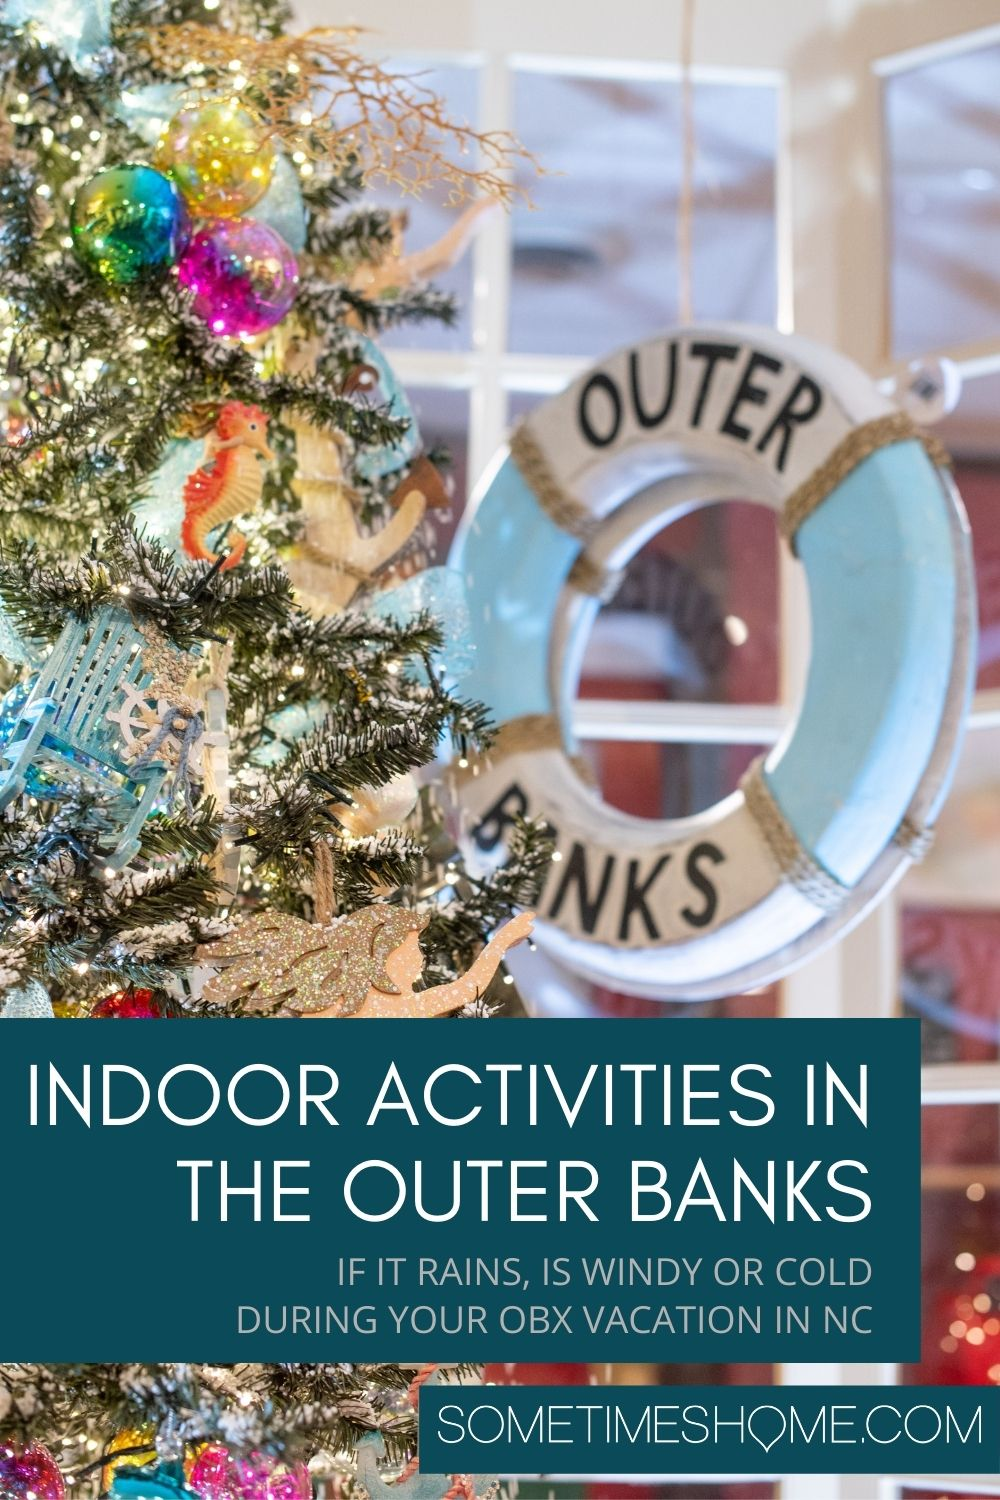 Pinterest image for Indoor Activities in the Outer Banks in NC if it rains, is windy or cold during your vacation.